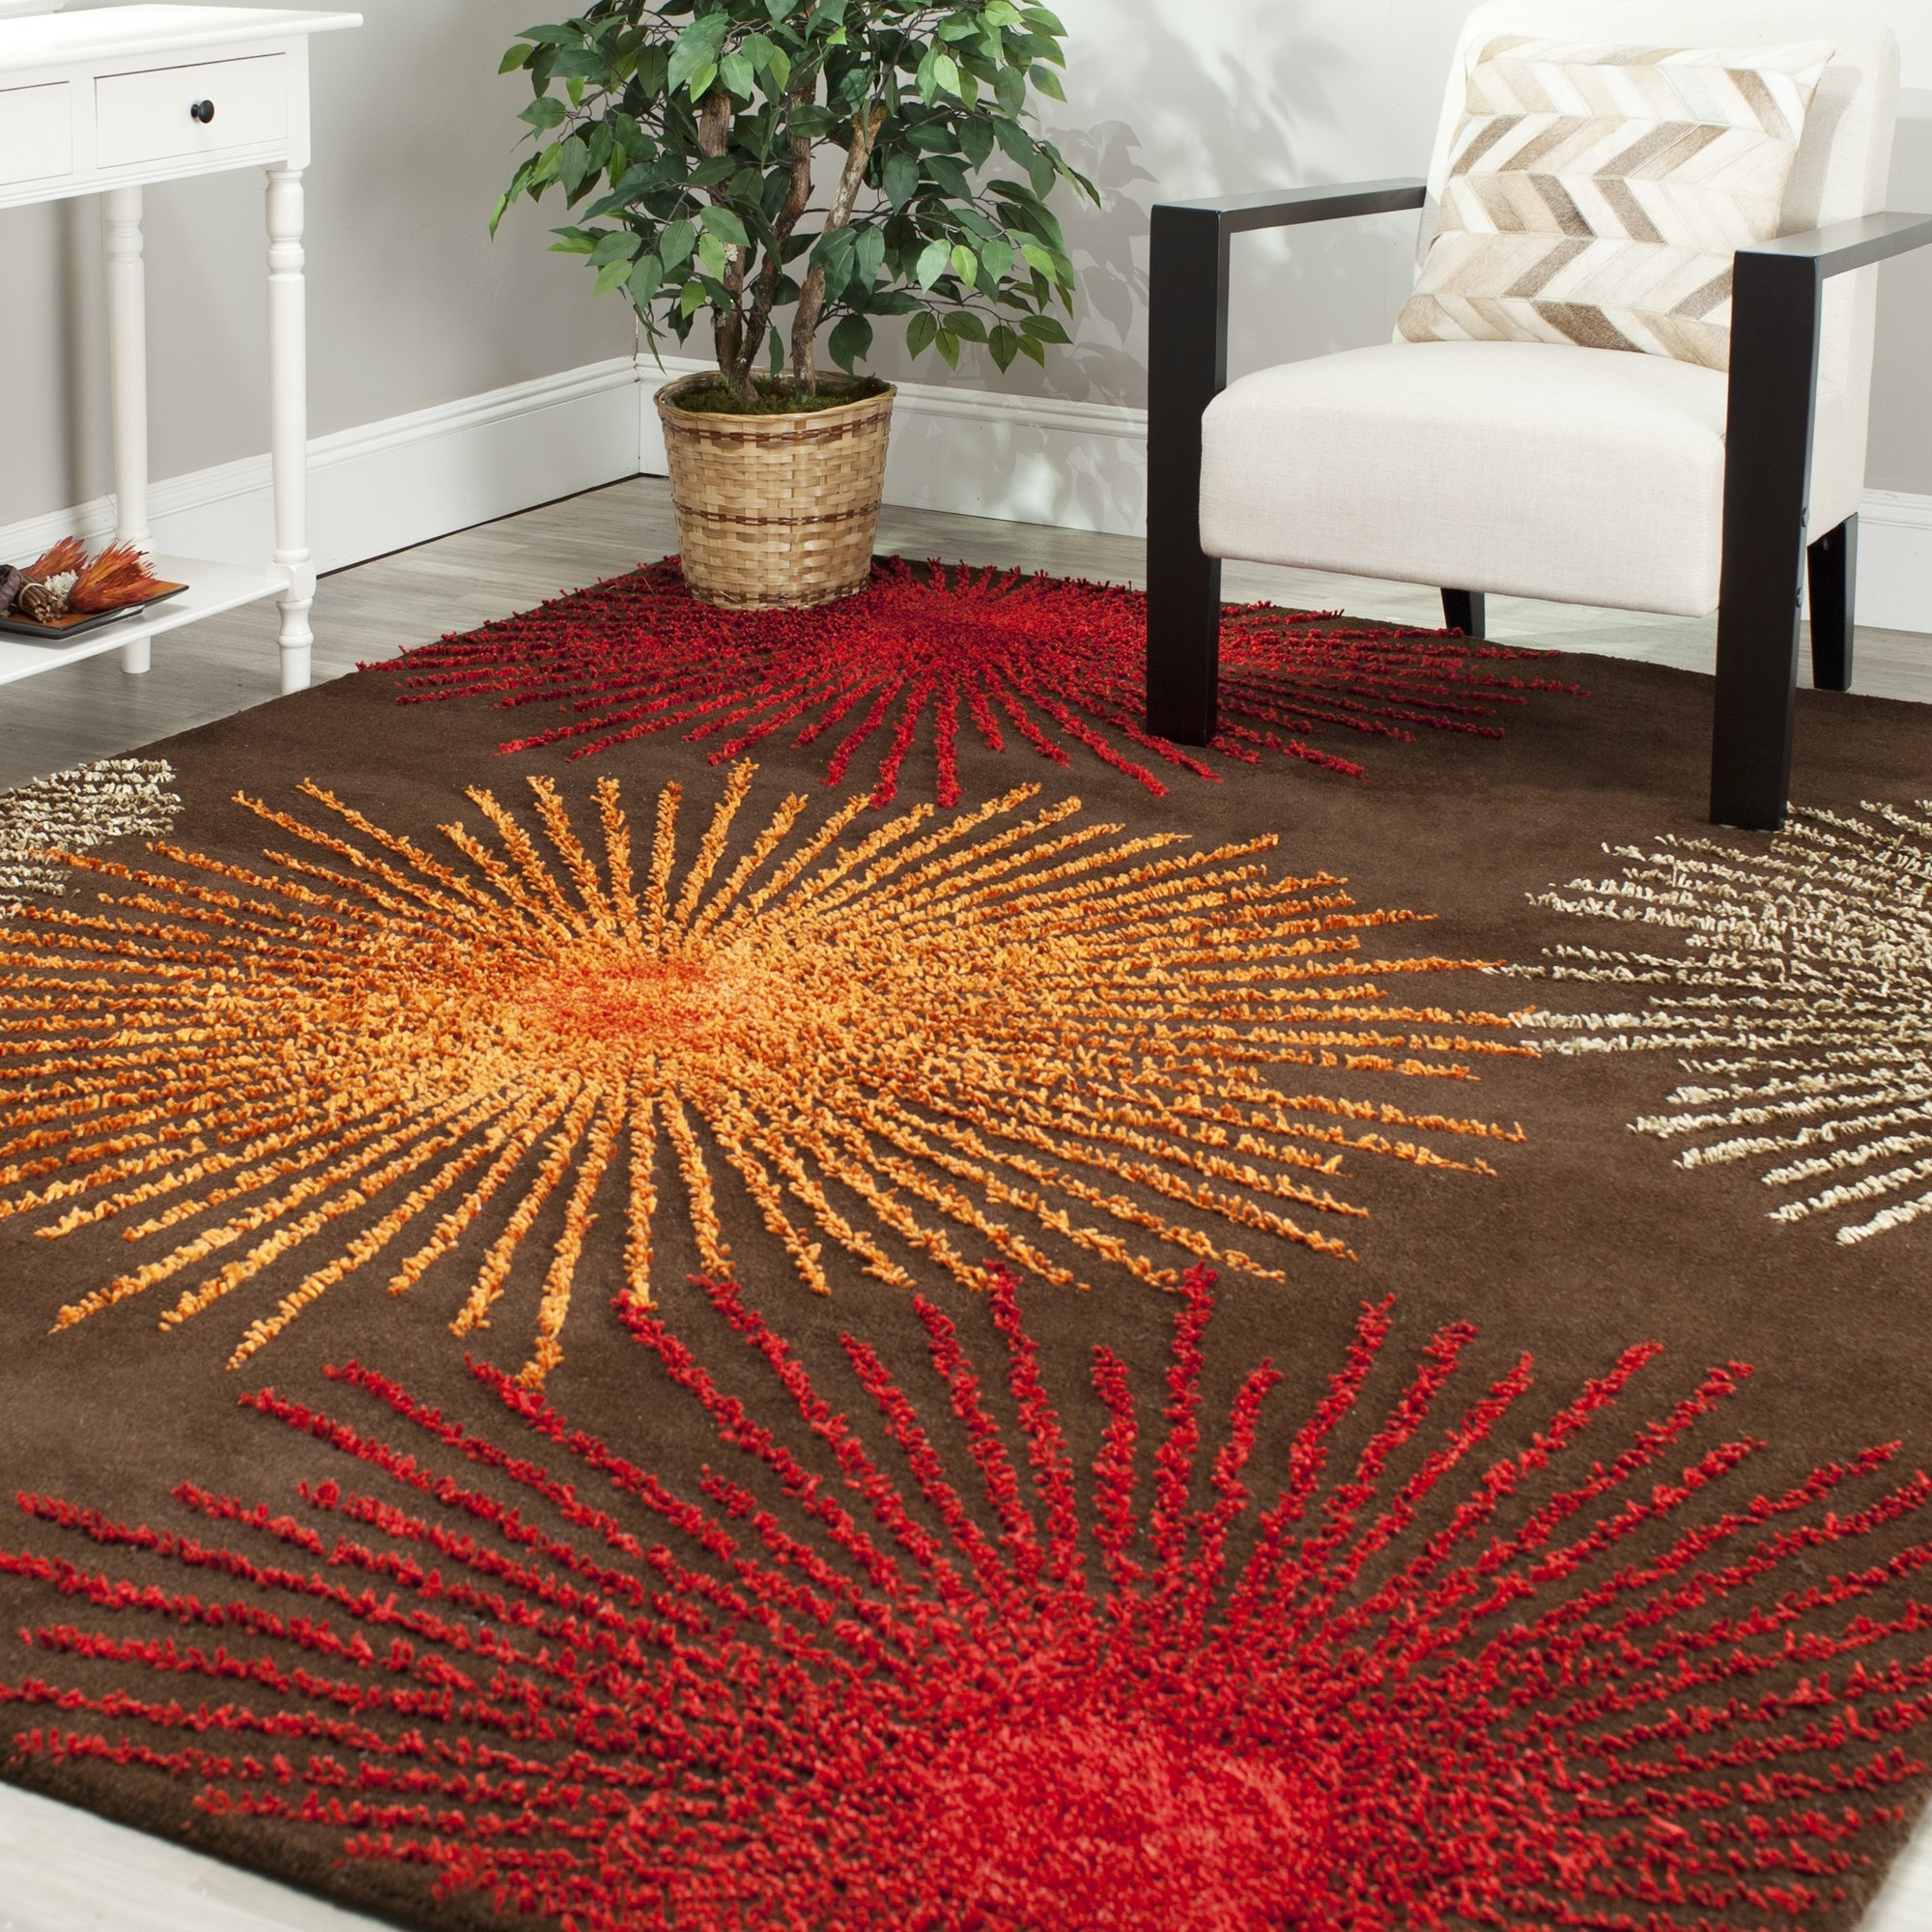 Schaub Brown Handmade Area Rug Reviews Allmodern With Brown Orange Rugs (Image 15 of 15)